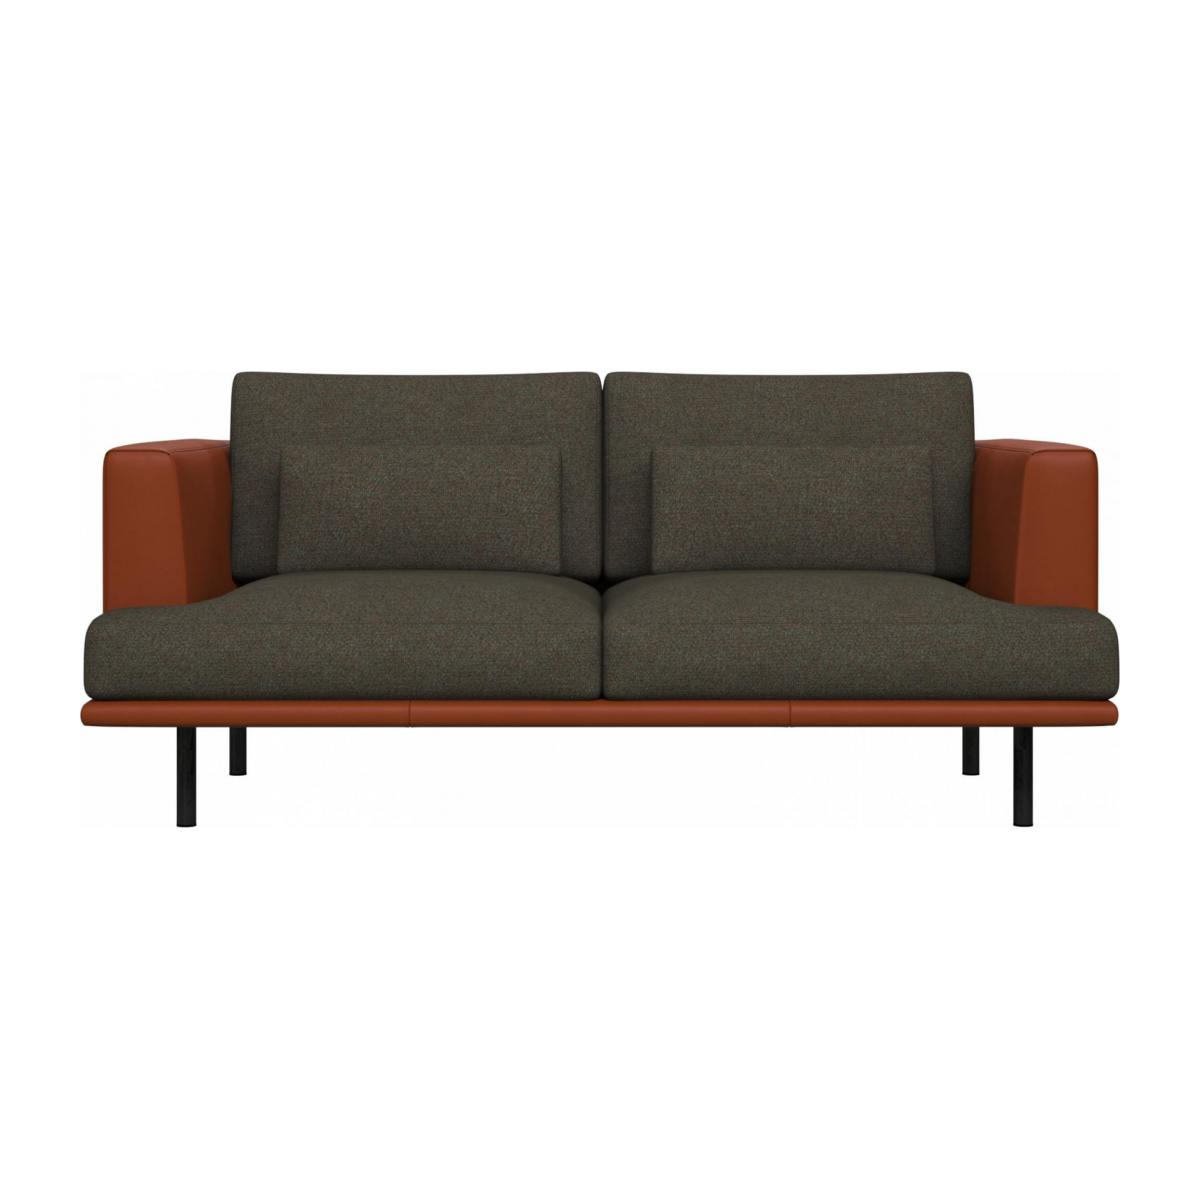 2 seater sofa in Lecce fabric, slade grey with base and armrests in brown leather n°1